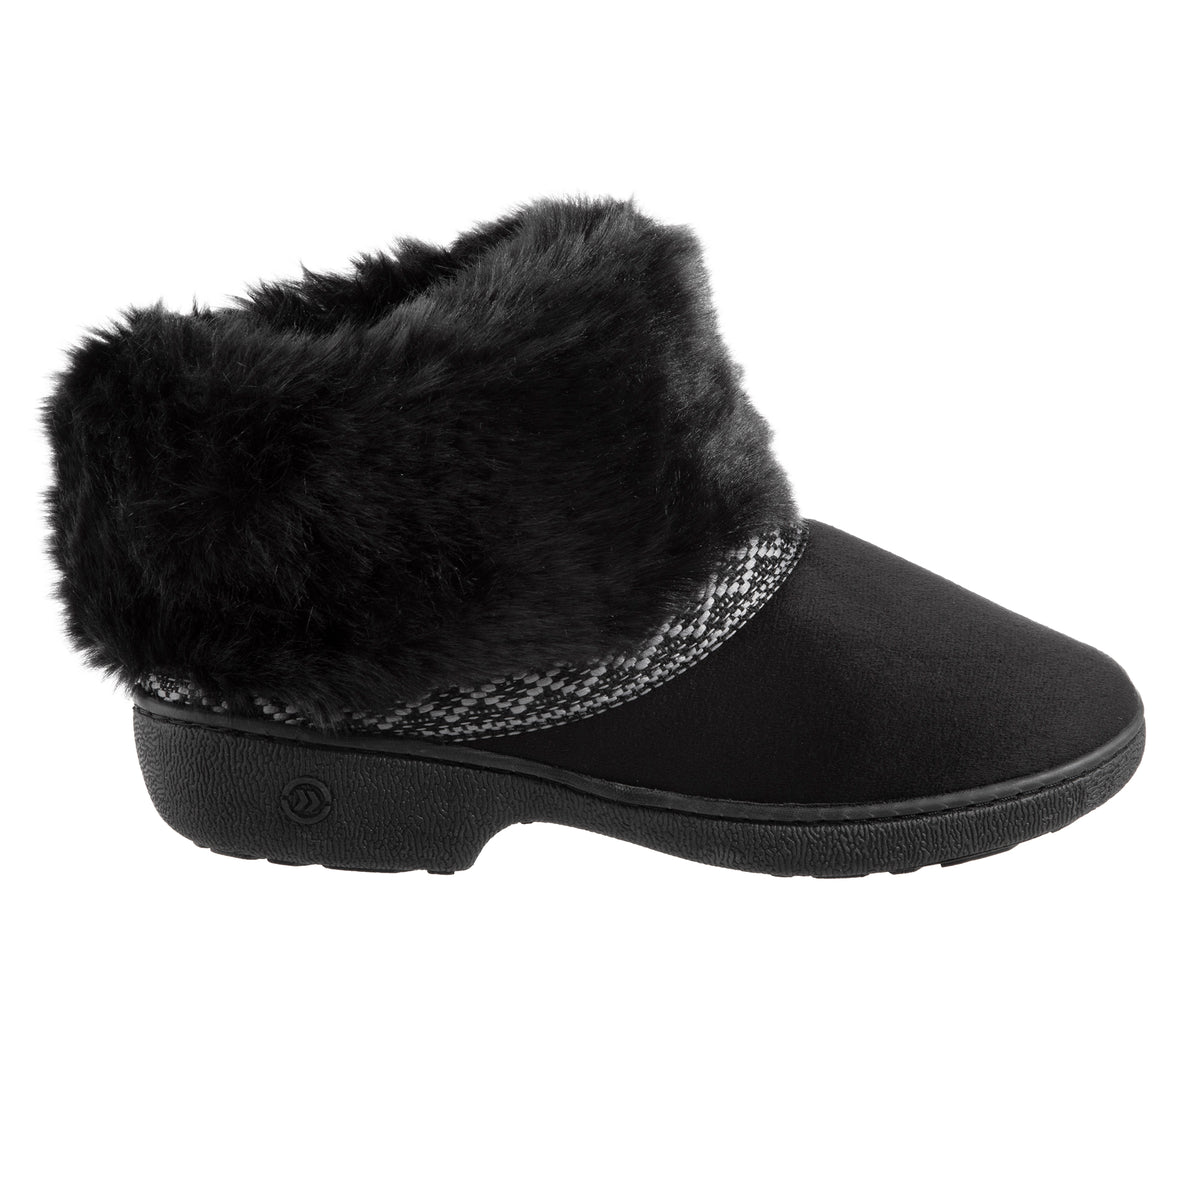 Women's Basil Microsuede Bootie Slippers Black 1